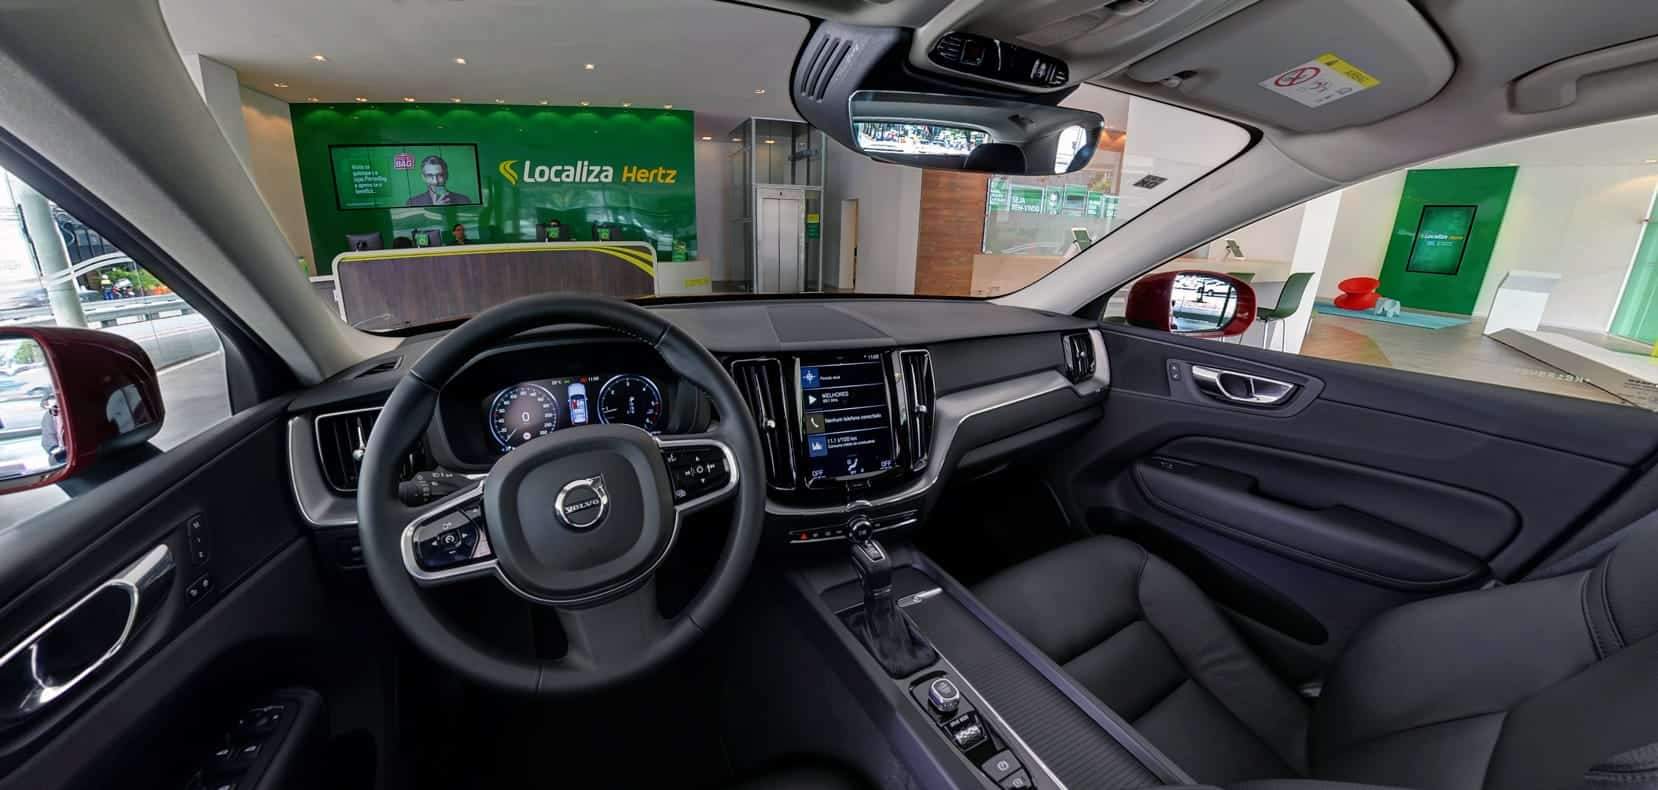 Tour virtual do interior do Volvo XC 60 da Localiza Hertz Savassi